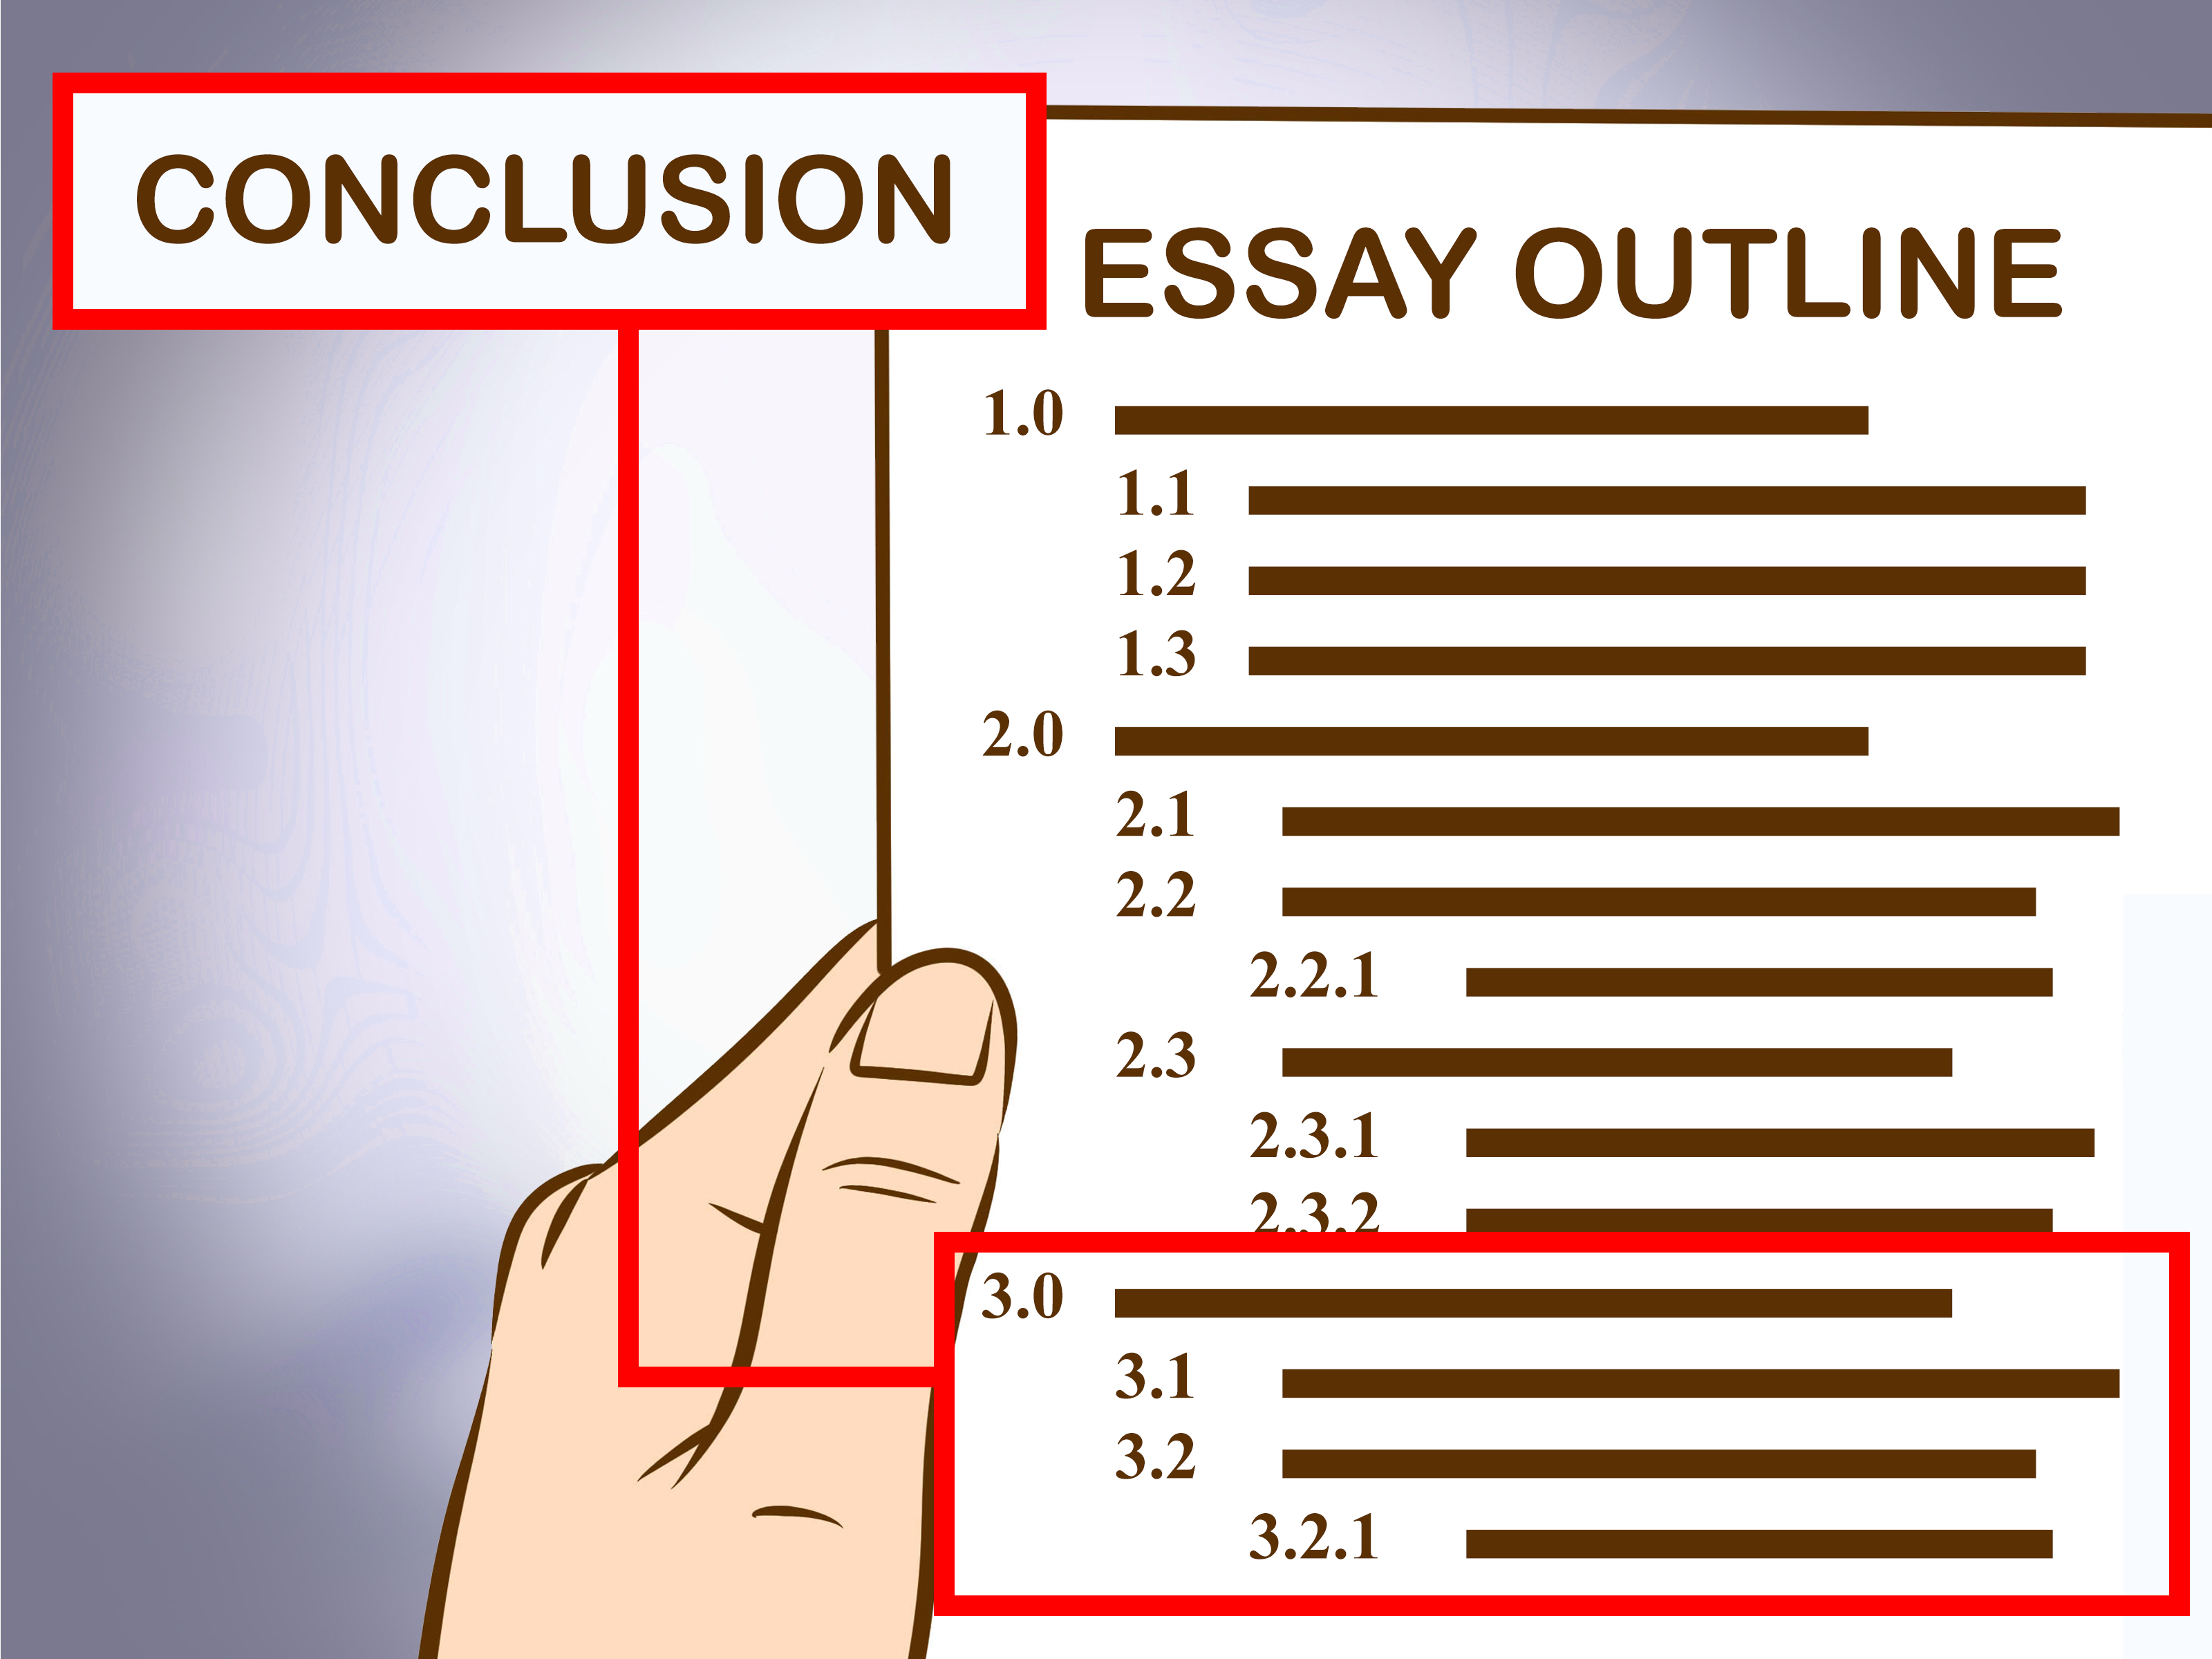 003 How To Make An Essay Example Write Outline Step Version Unusual Self Introduction The Best In Longer With Periods Full